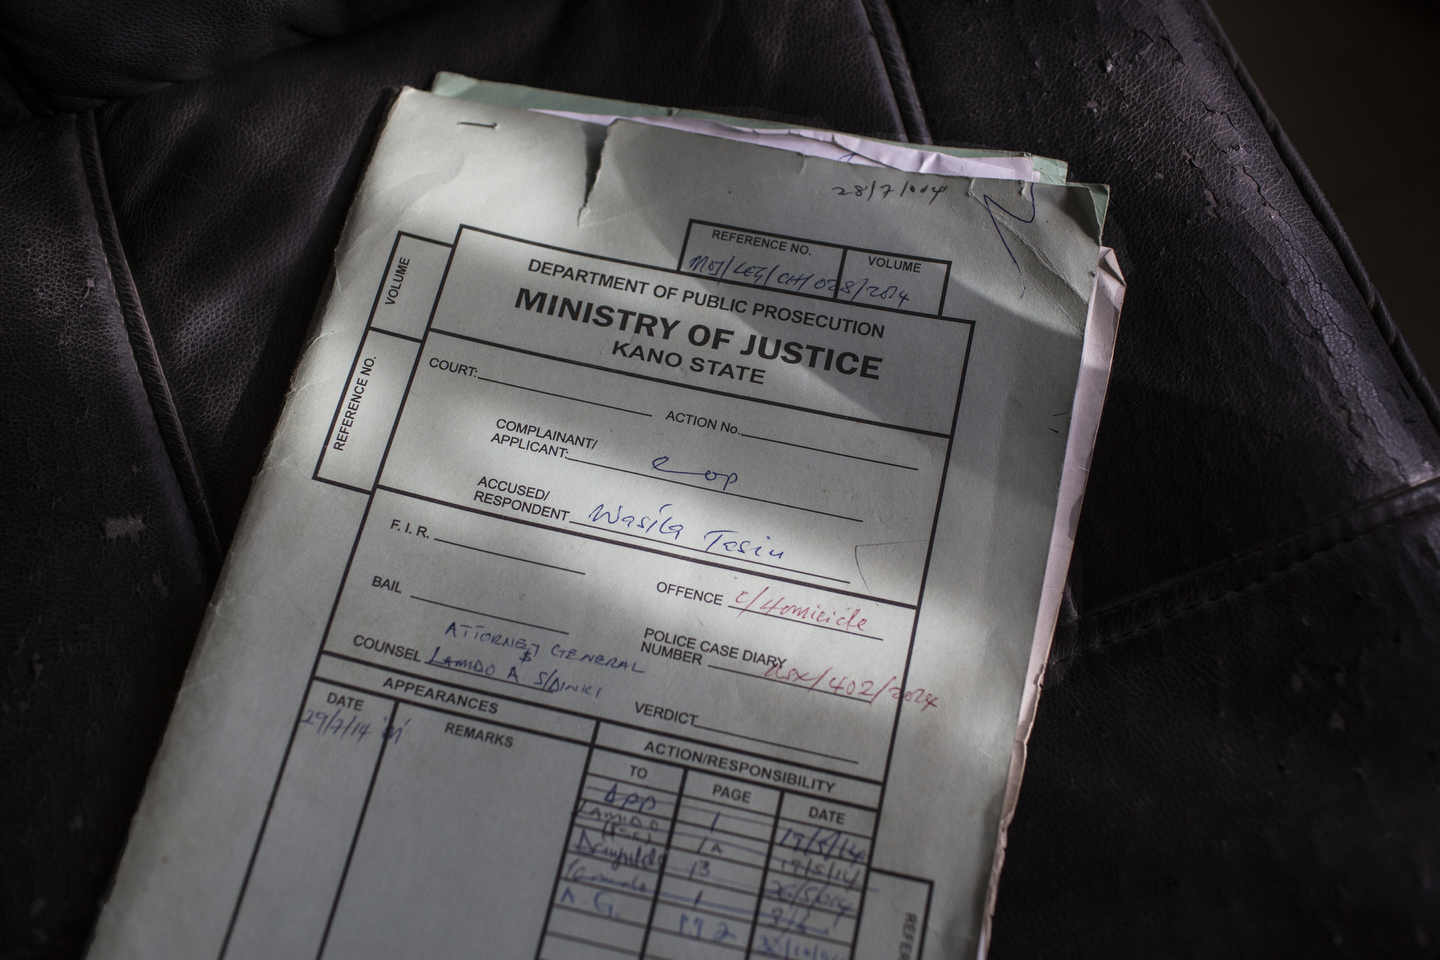 Wasila\'s file at the Ministry of Justice in Kano.